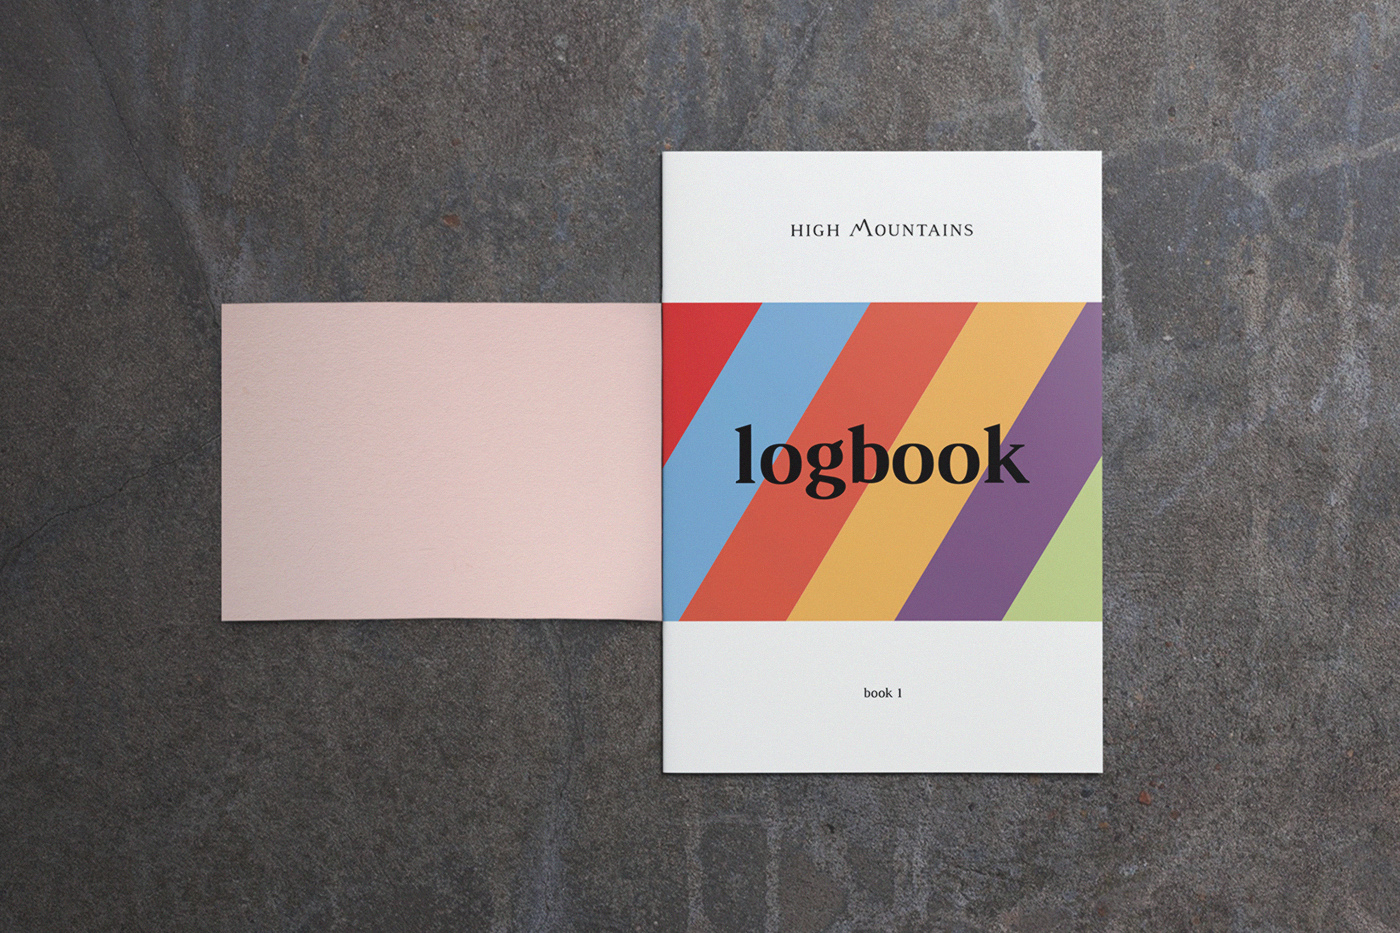 HMR Logbook cover opened